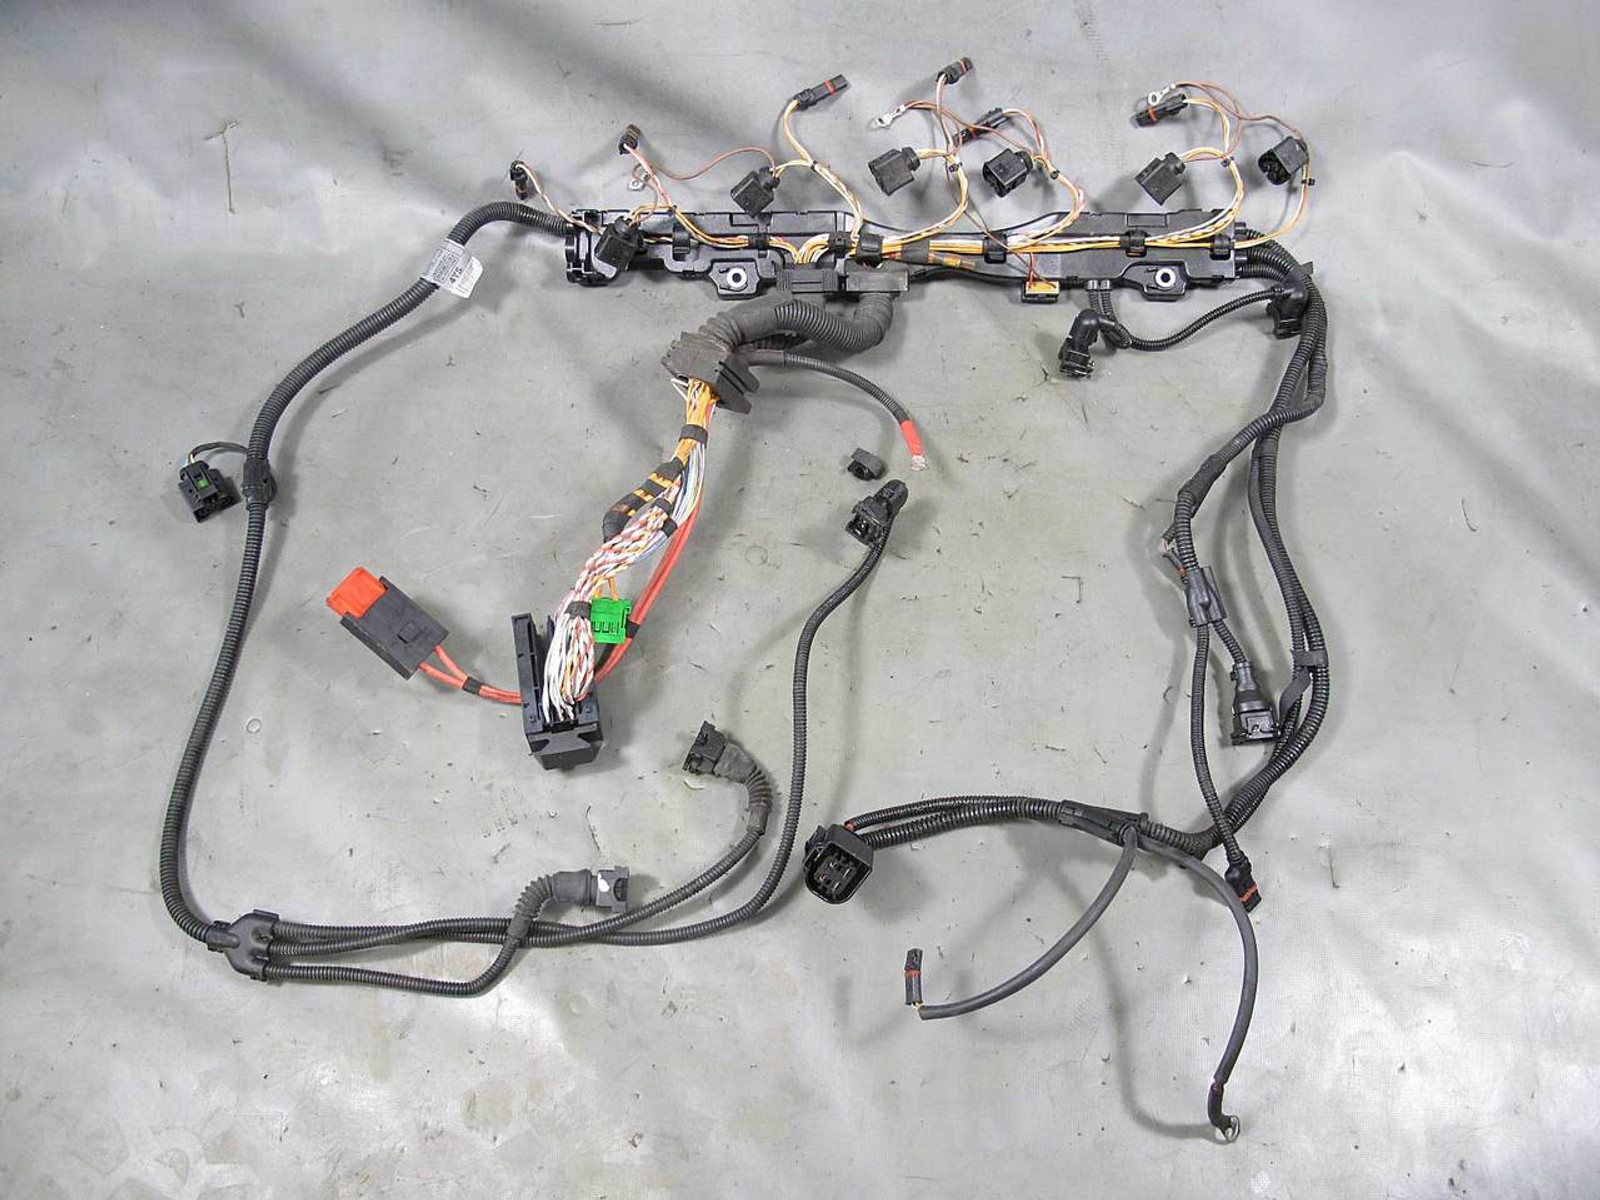 BMW N54 3.0L Twin-Turbo Fuel Injector Ignition Coil Wiring Harness  2008-2013 OE - Prussian Motors | Bmw Ignition Control Module Wiring Harness |  | Prussian Motors